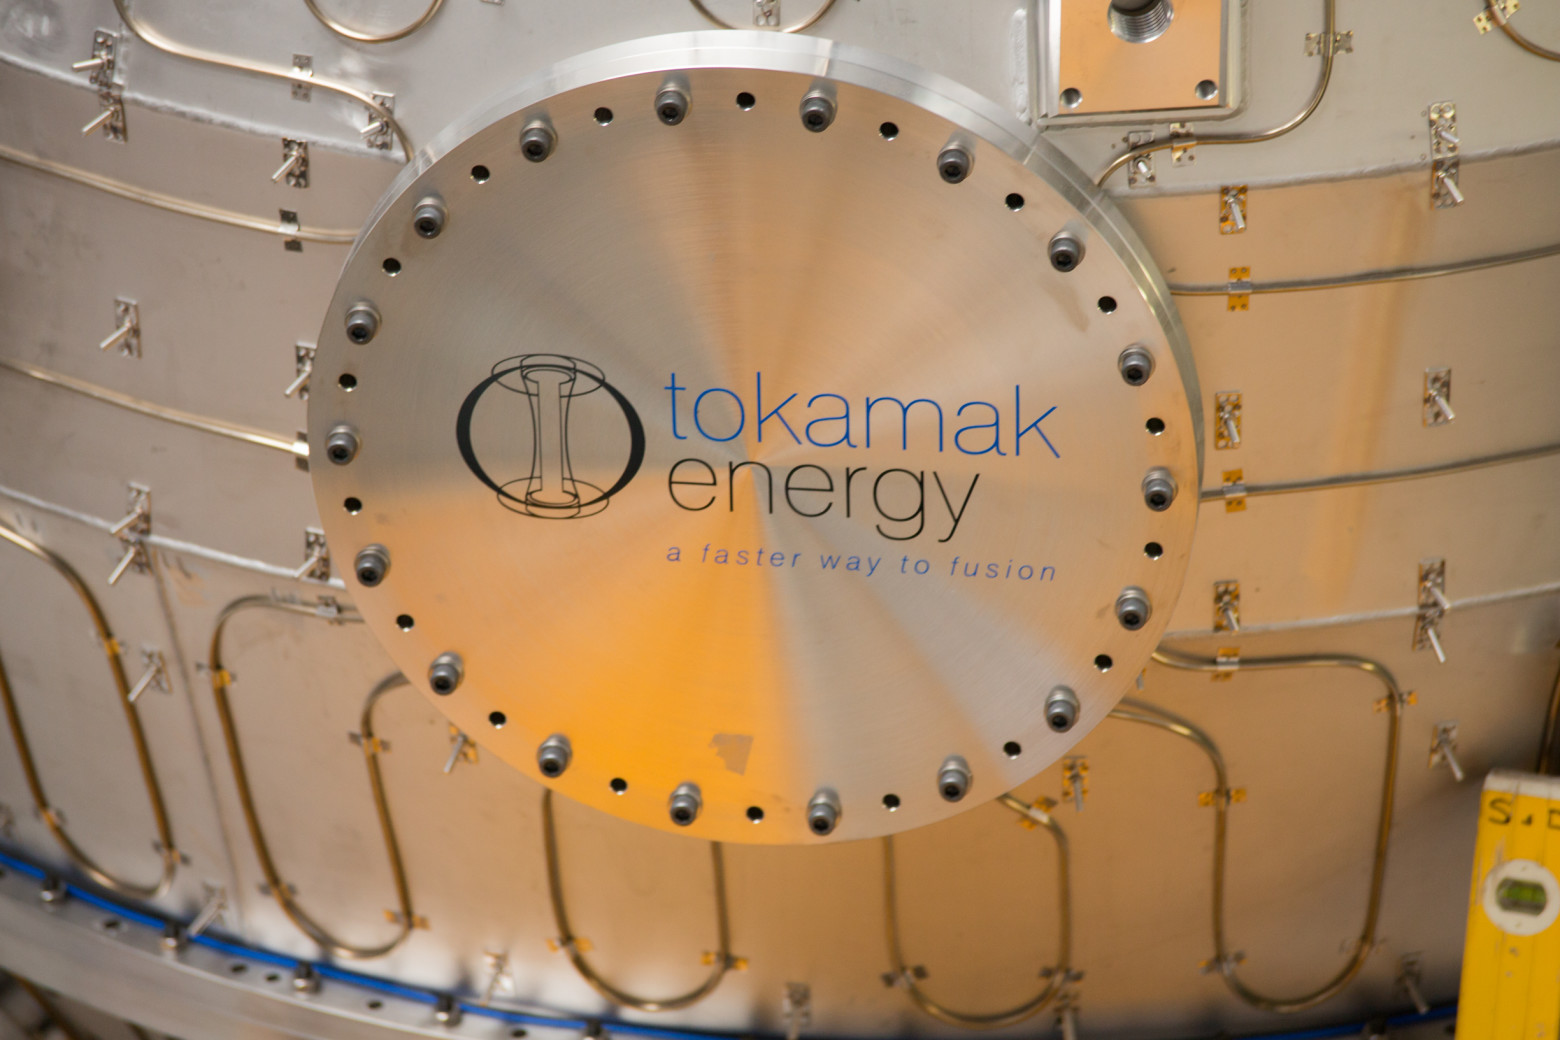 Tokamak Energy raises £67m from new and existing investors